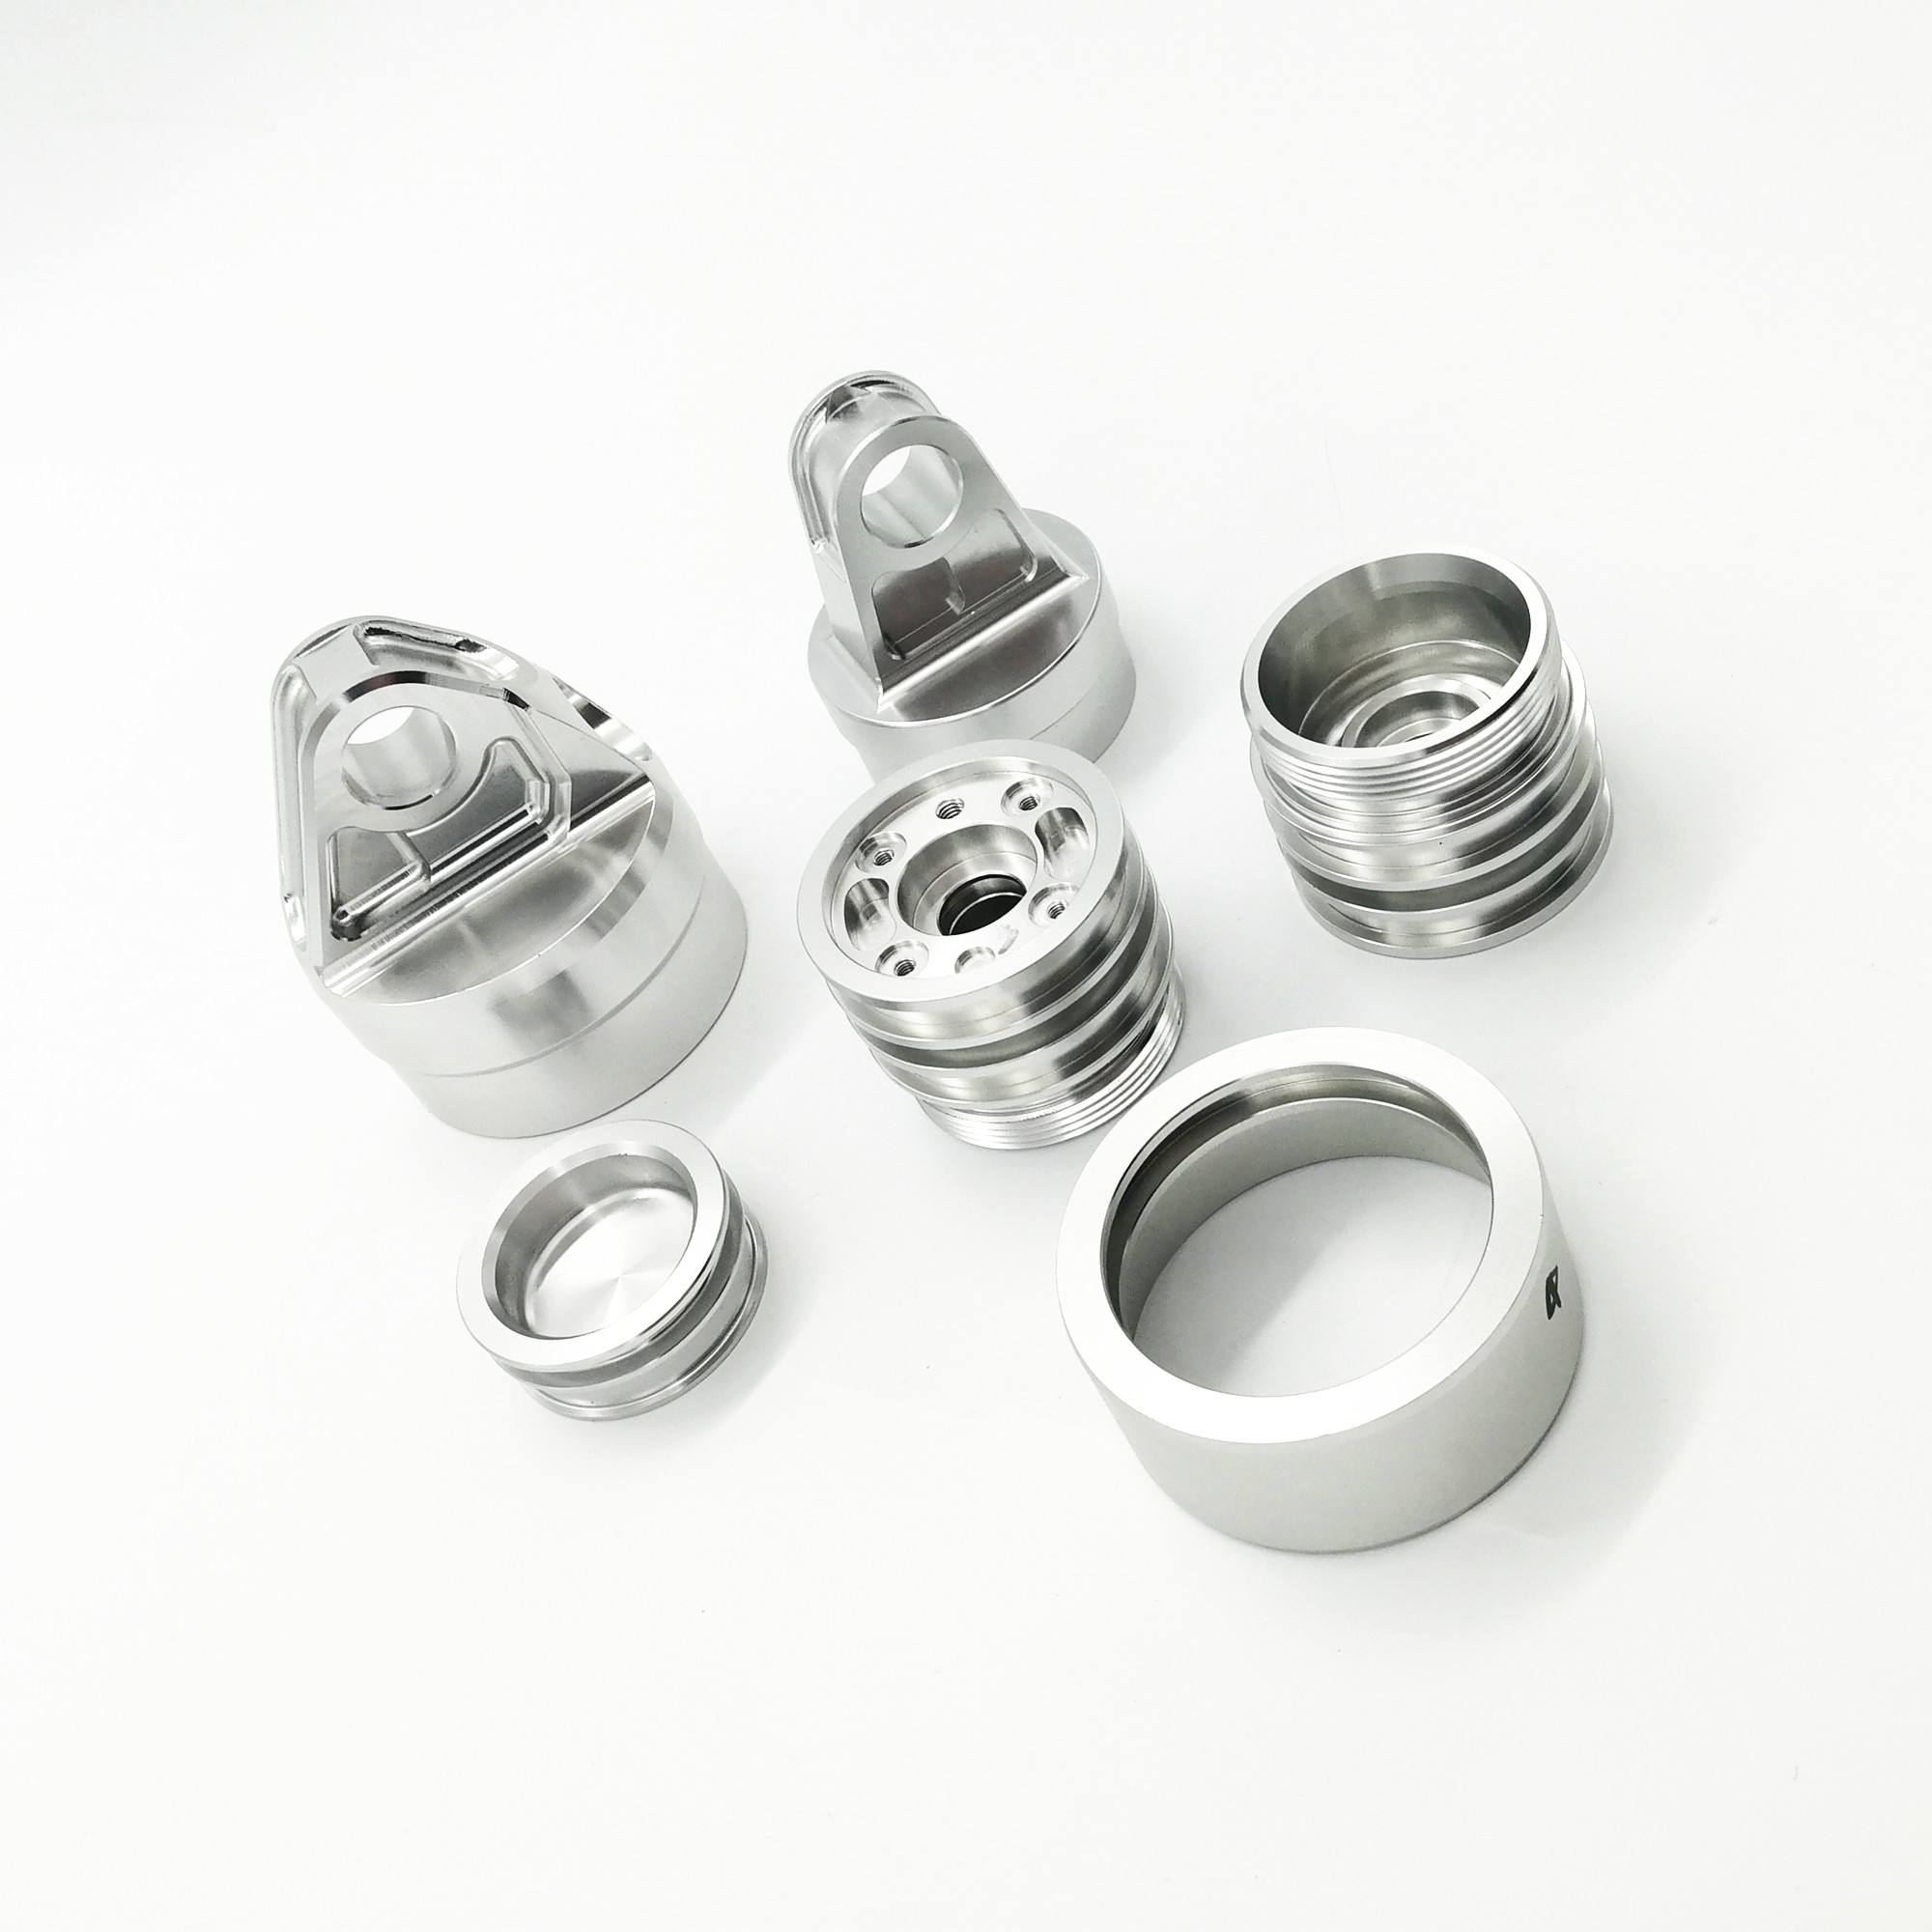 OEM Deliver High Quality Components in Less Lead Time Custom CNC Car Parts Machining